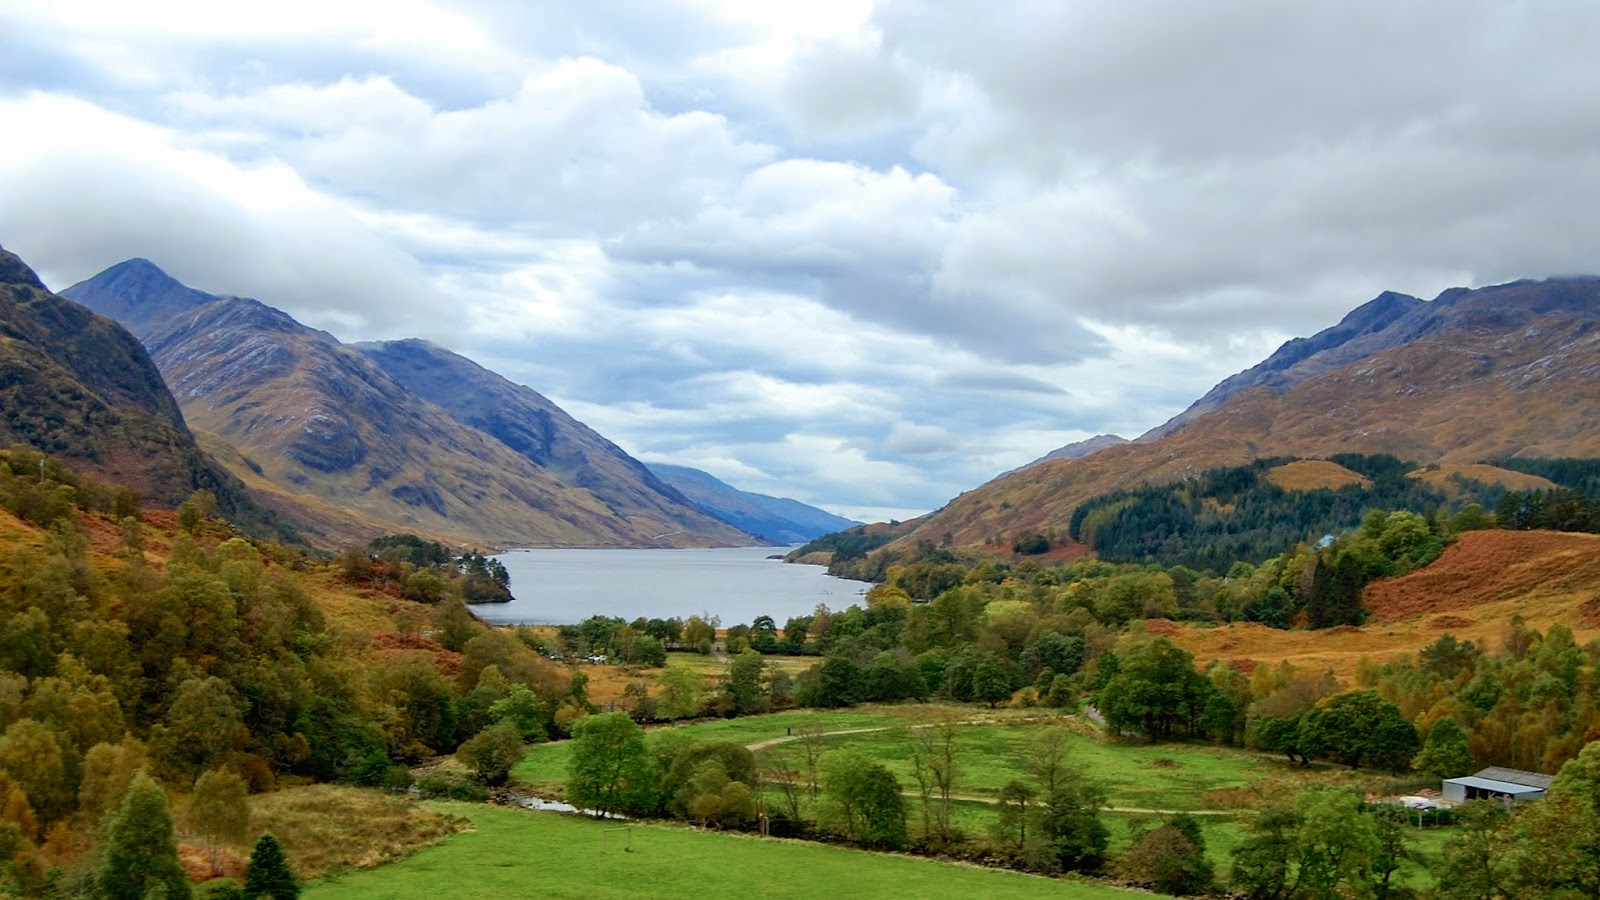 View from the Glenfinnan Viaduct